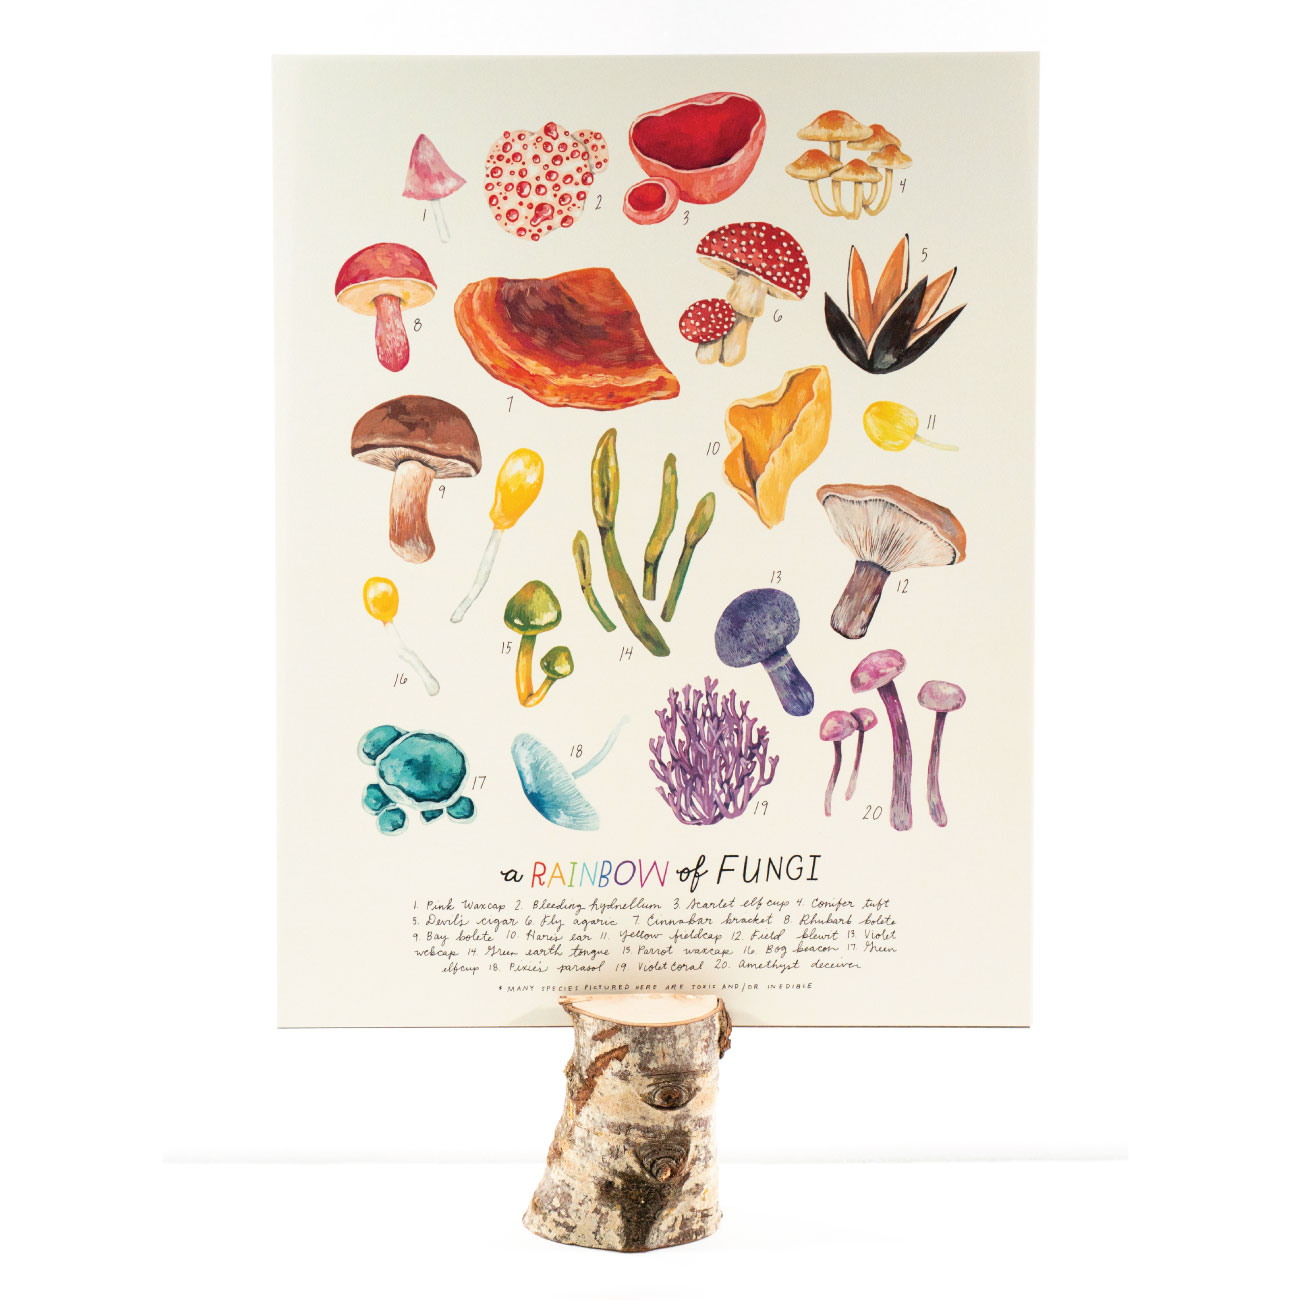 Rainbow of Fungi poster available in the shop.